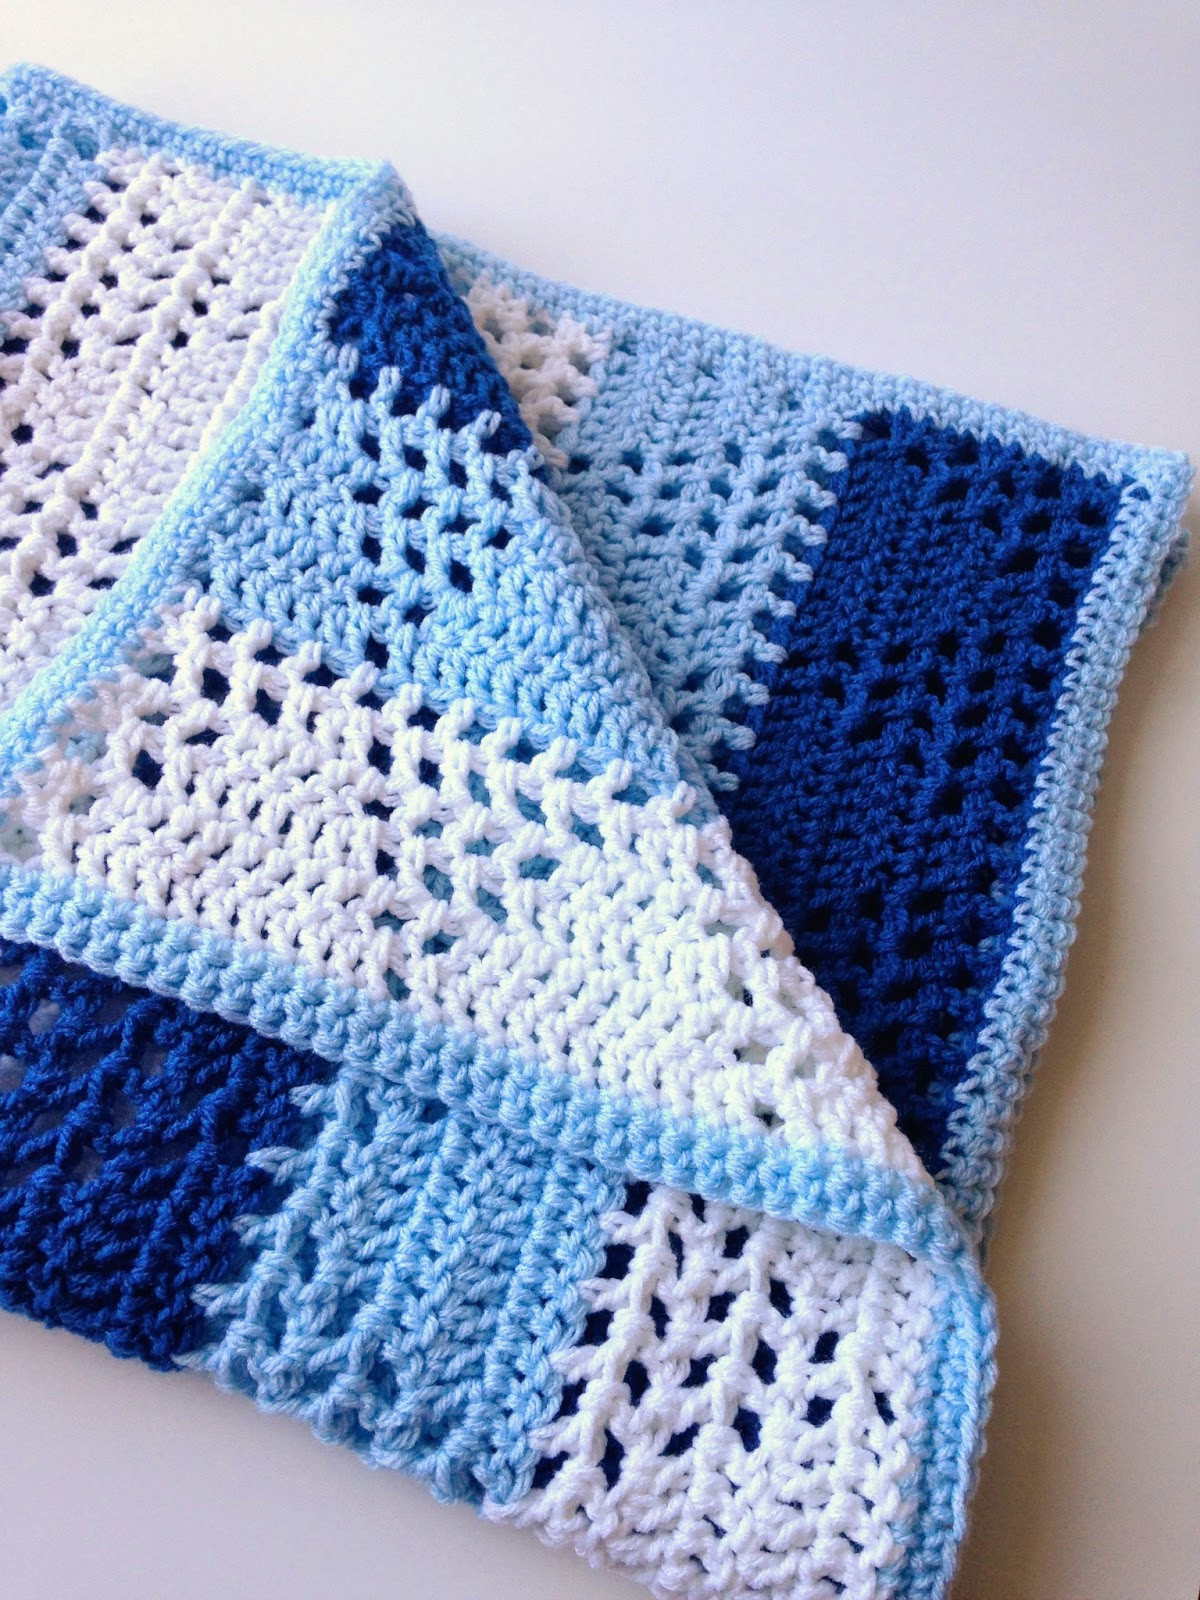 Baby Boy Crochet Blanket Patterns Awesome 5 Little Monsters Triangles & Stripes Baby Blanket Of Baby Boy Crochet Blanket Patterns Inspirational Turquoise Baby Blanket Chunky Crochet Blanket for Baby Boy